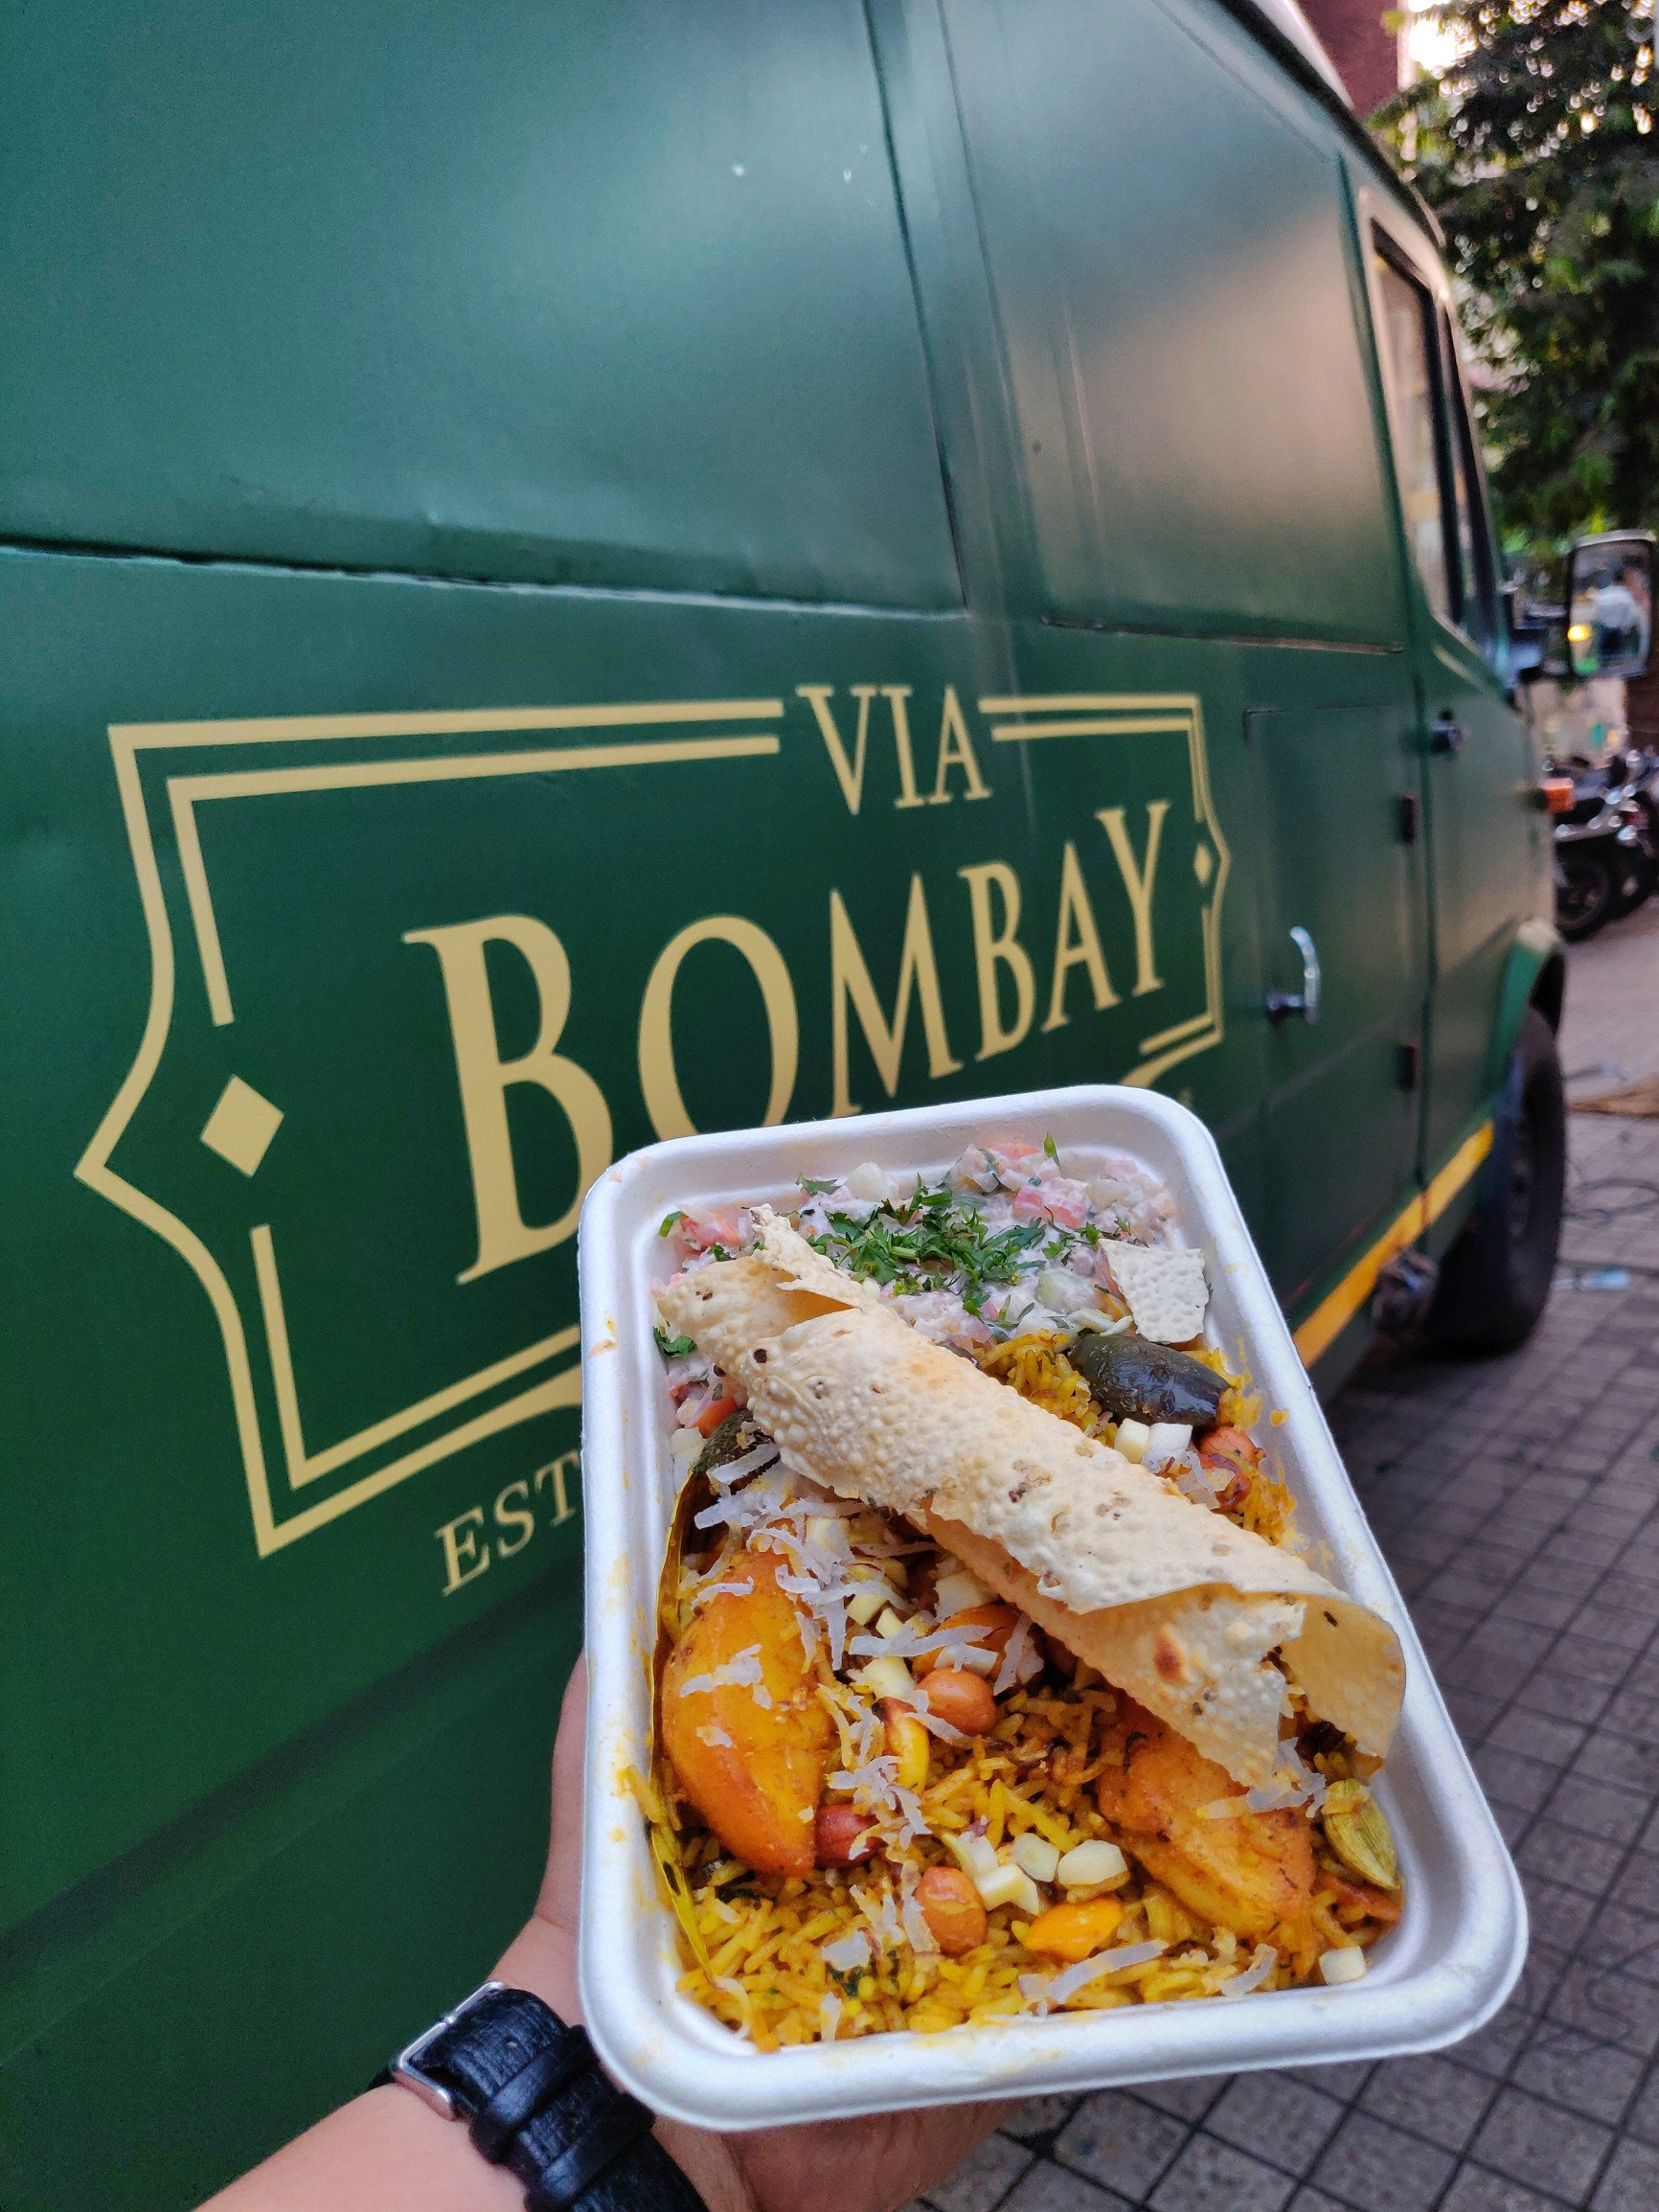 Via Bombay Goes Mobile With Bombay Food Truck